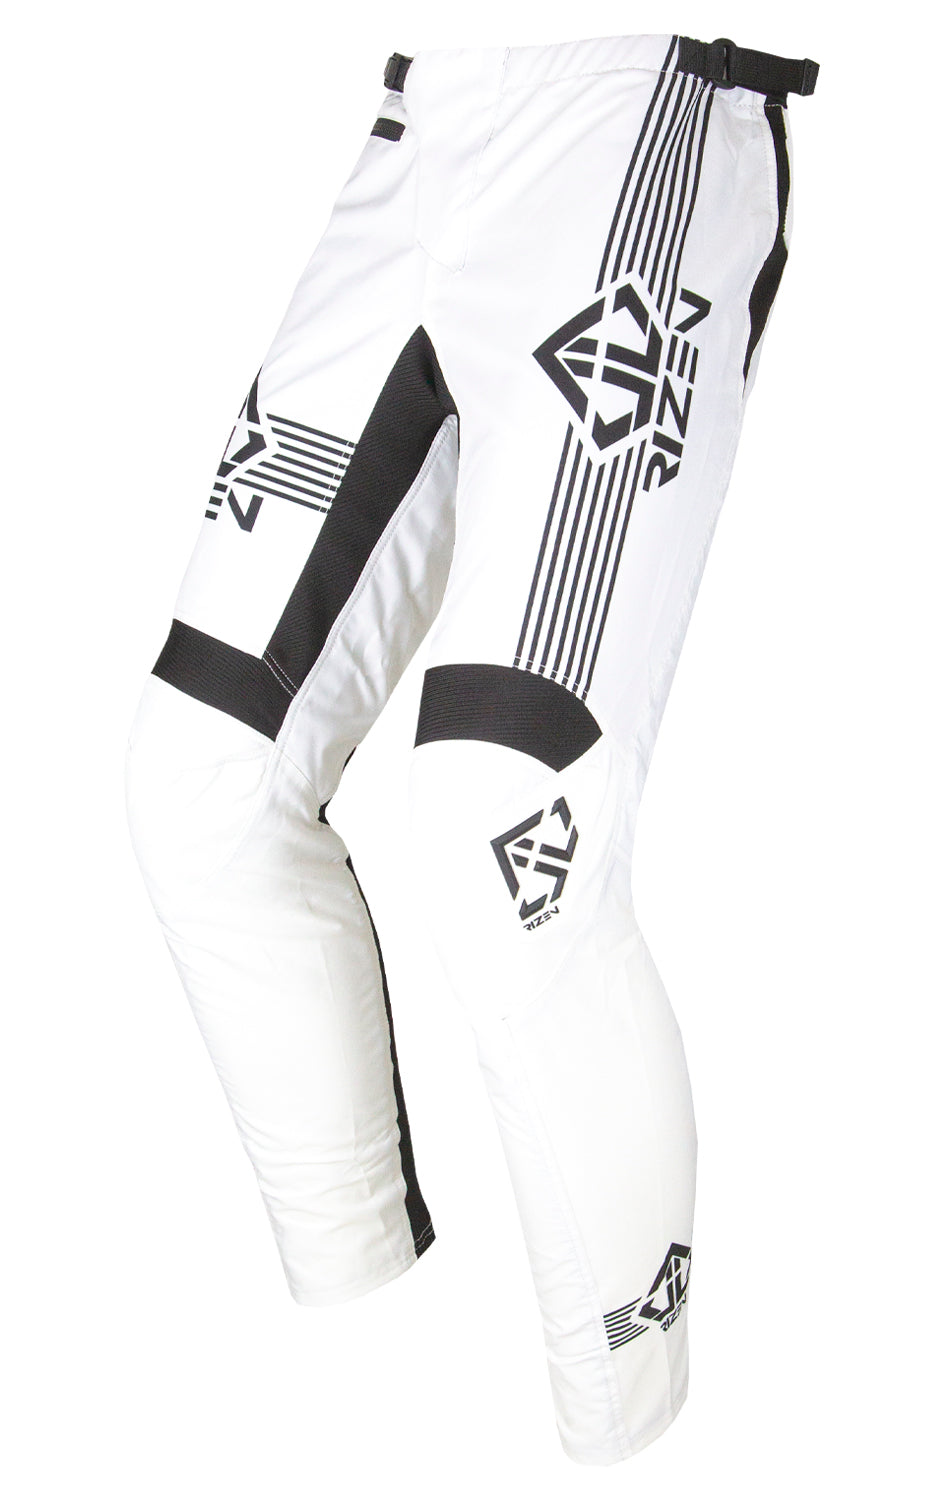 PHAZE 1 PANTS YOUTH - BICYCLE - WHITE/BLACK